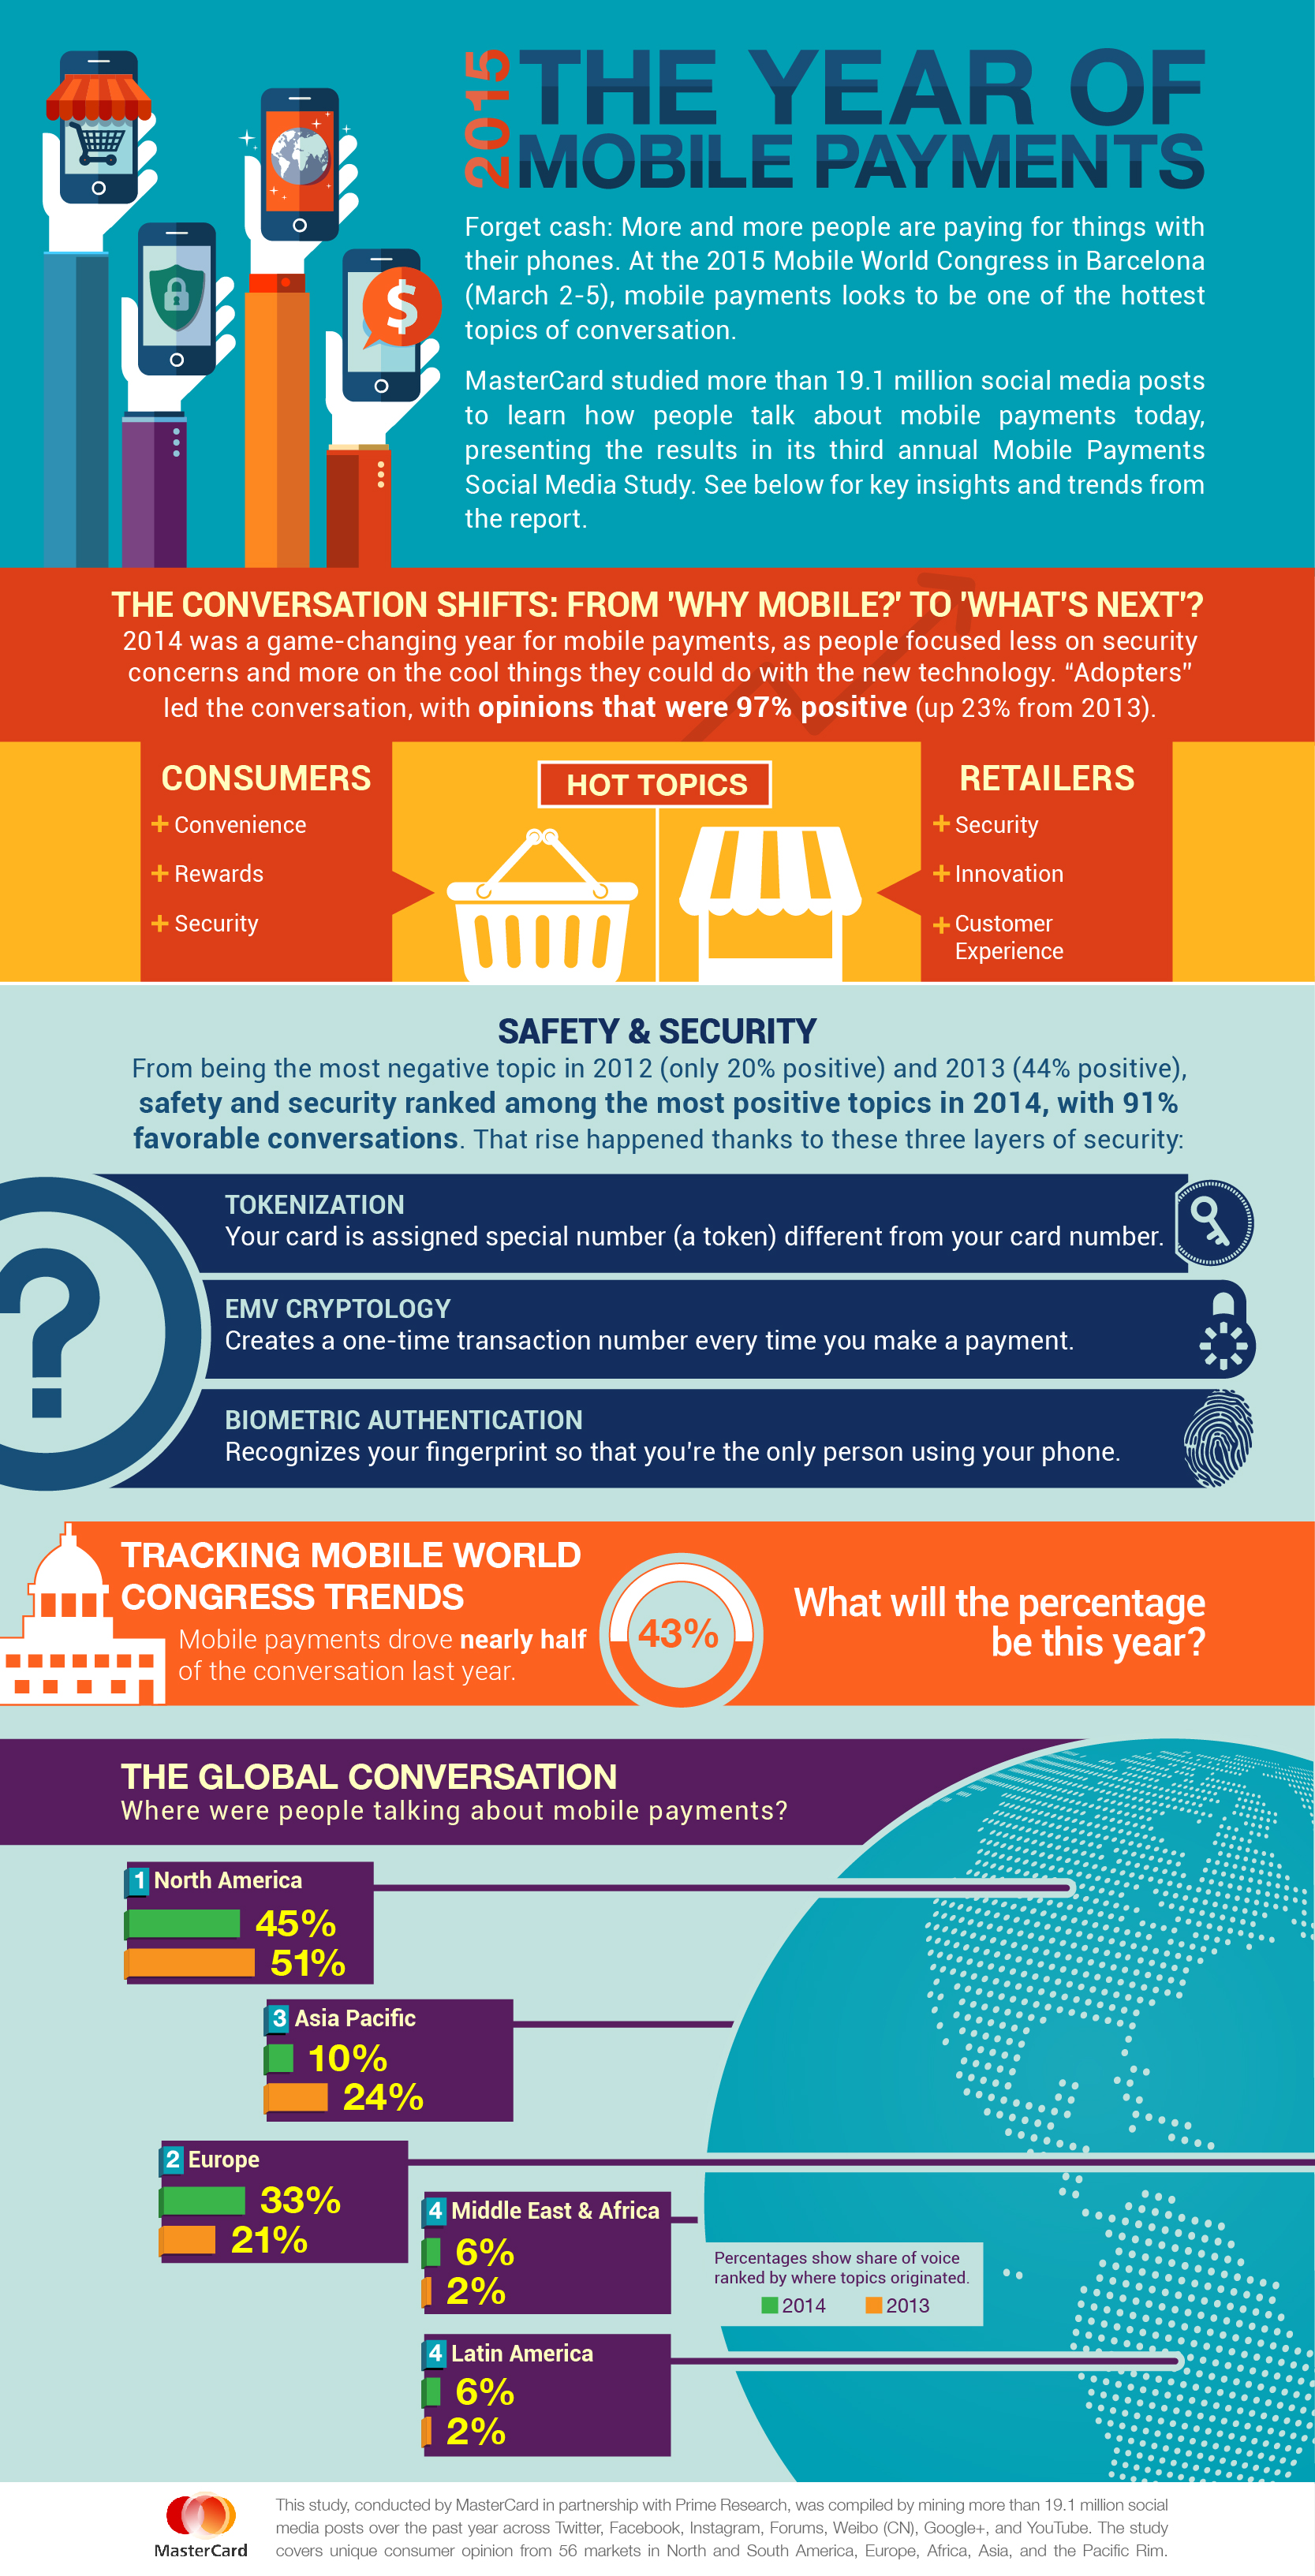 Mastercard_infographic